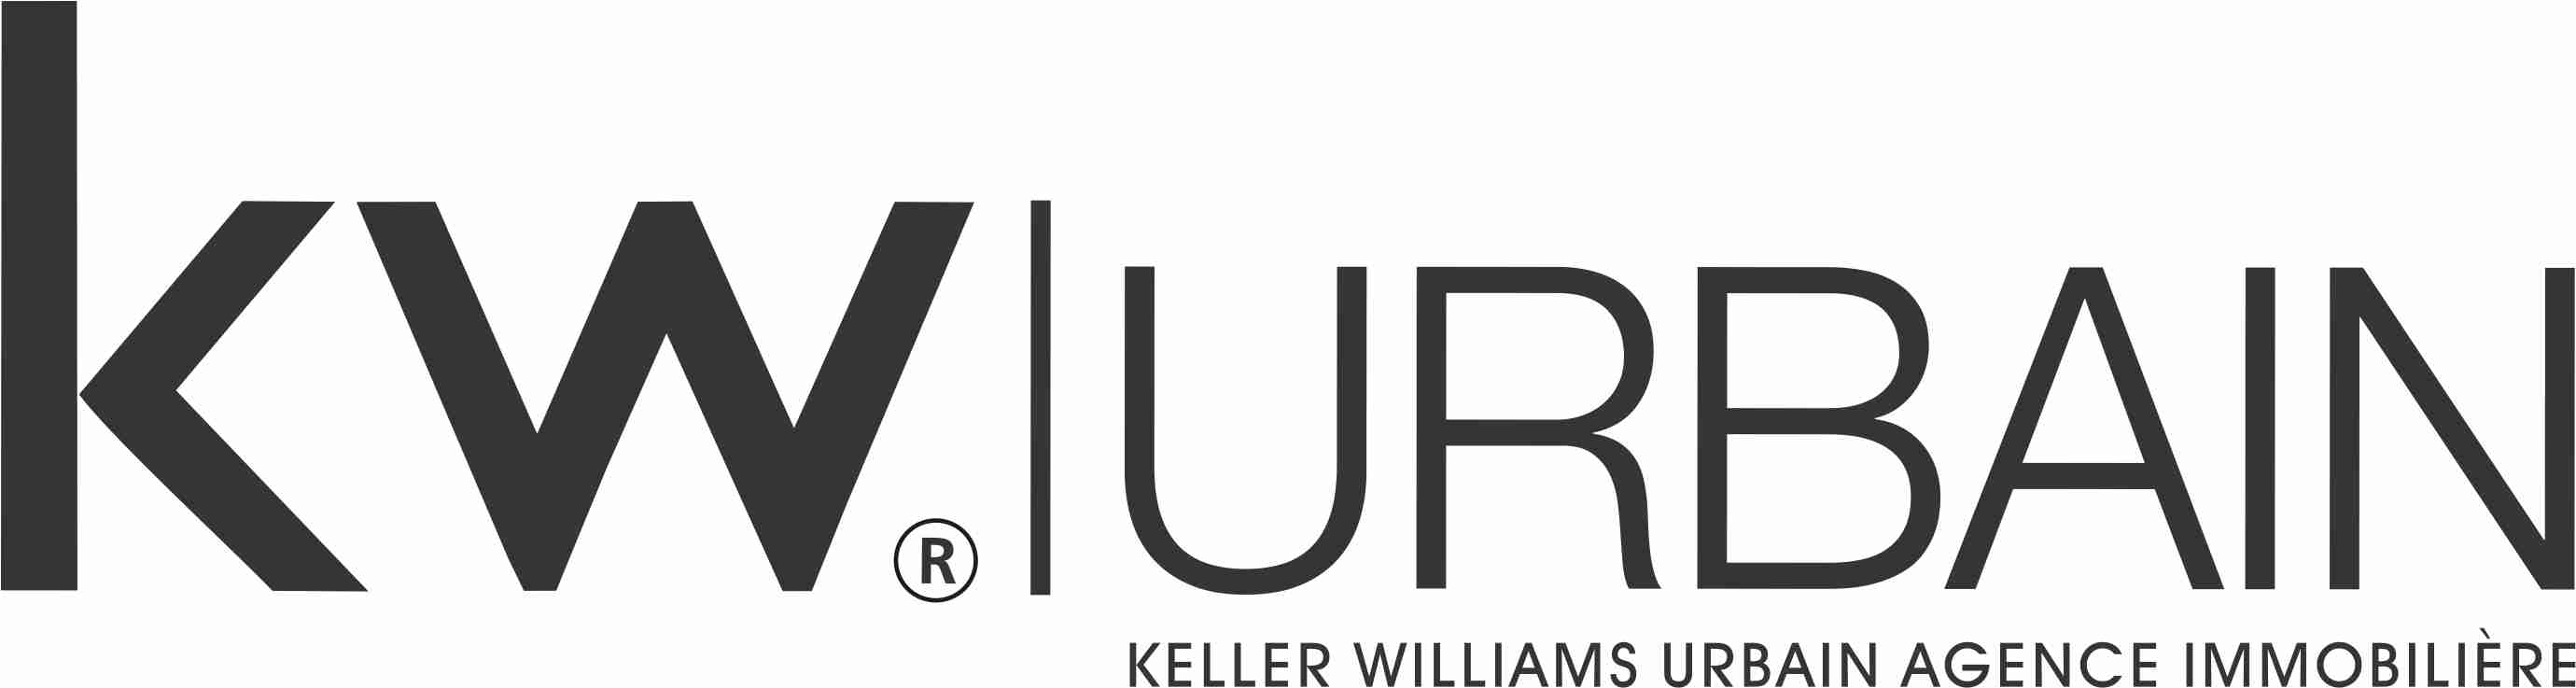 agence immobiliere keller williams urbain